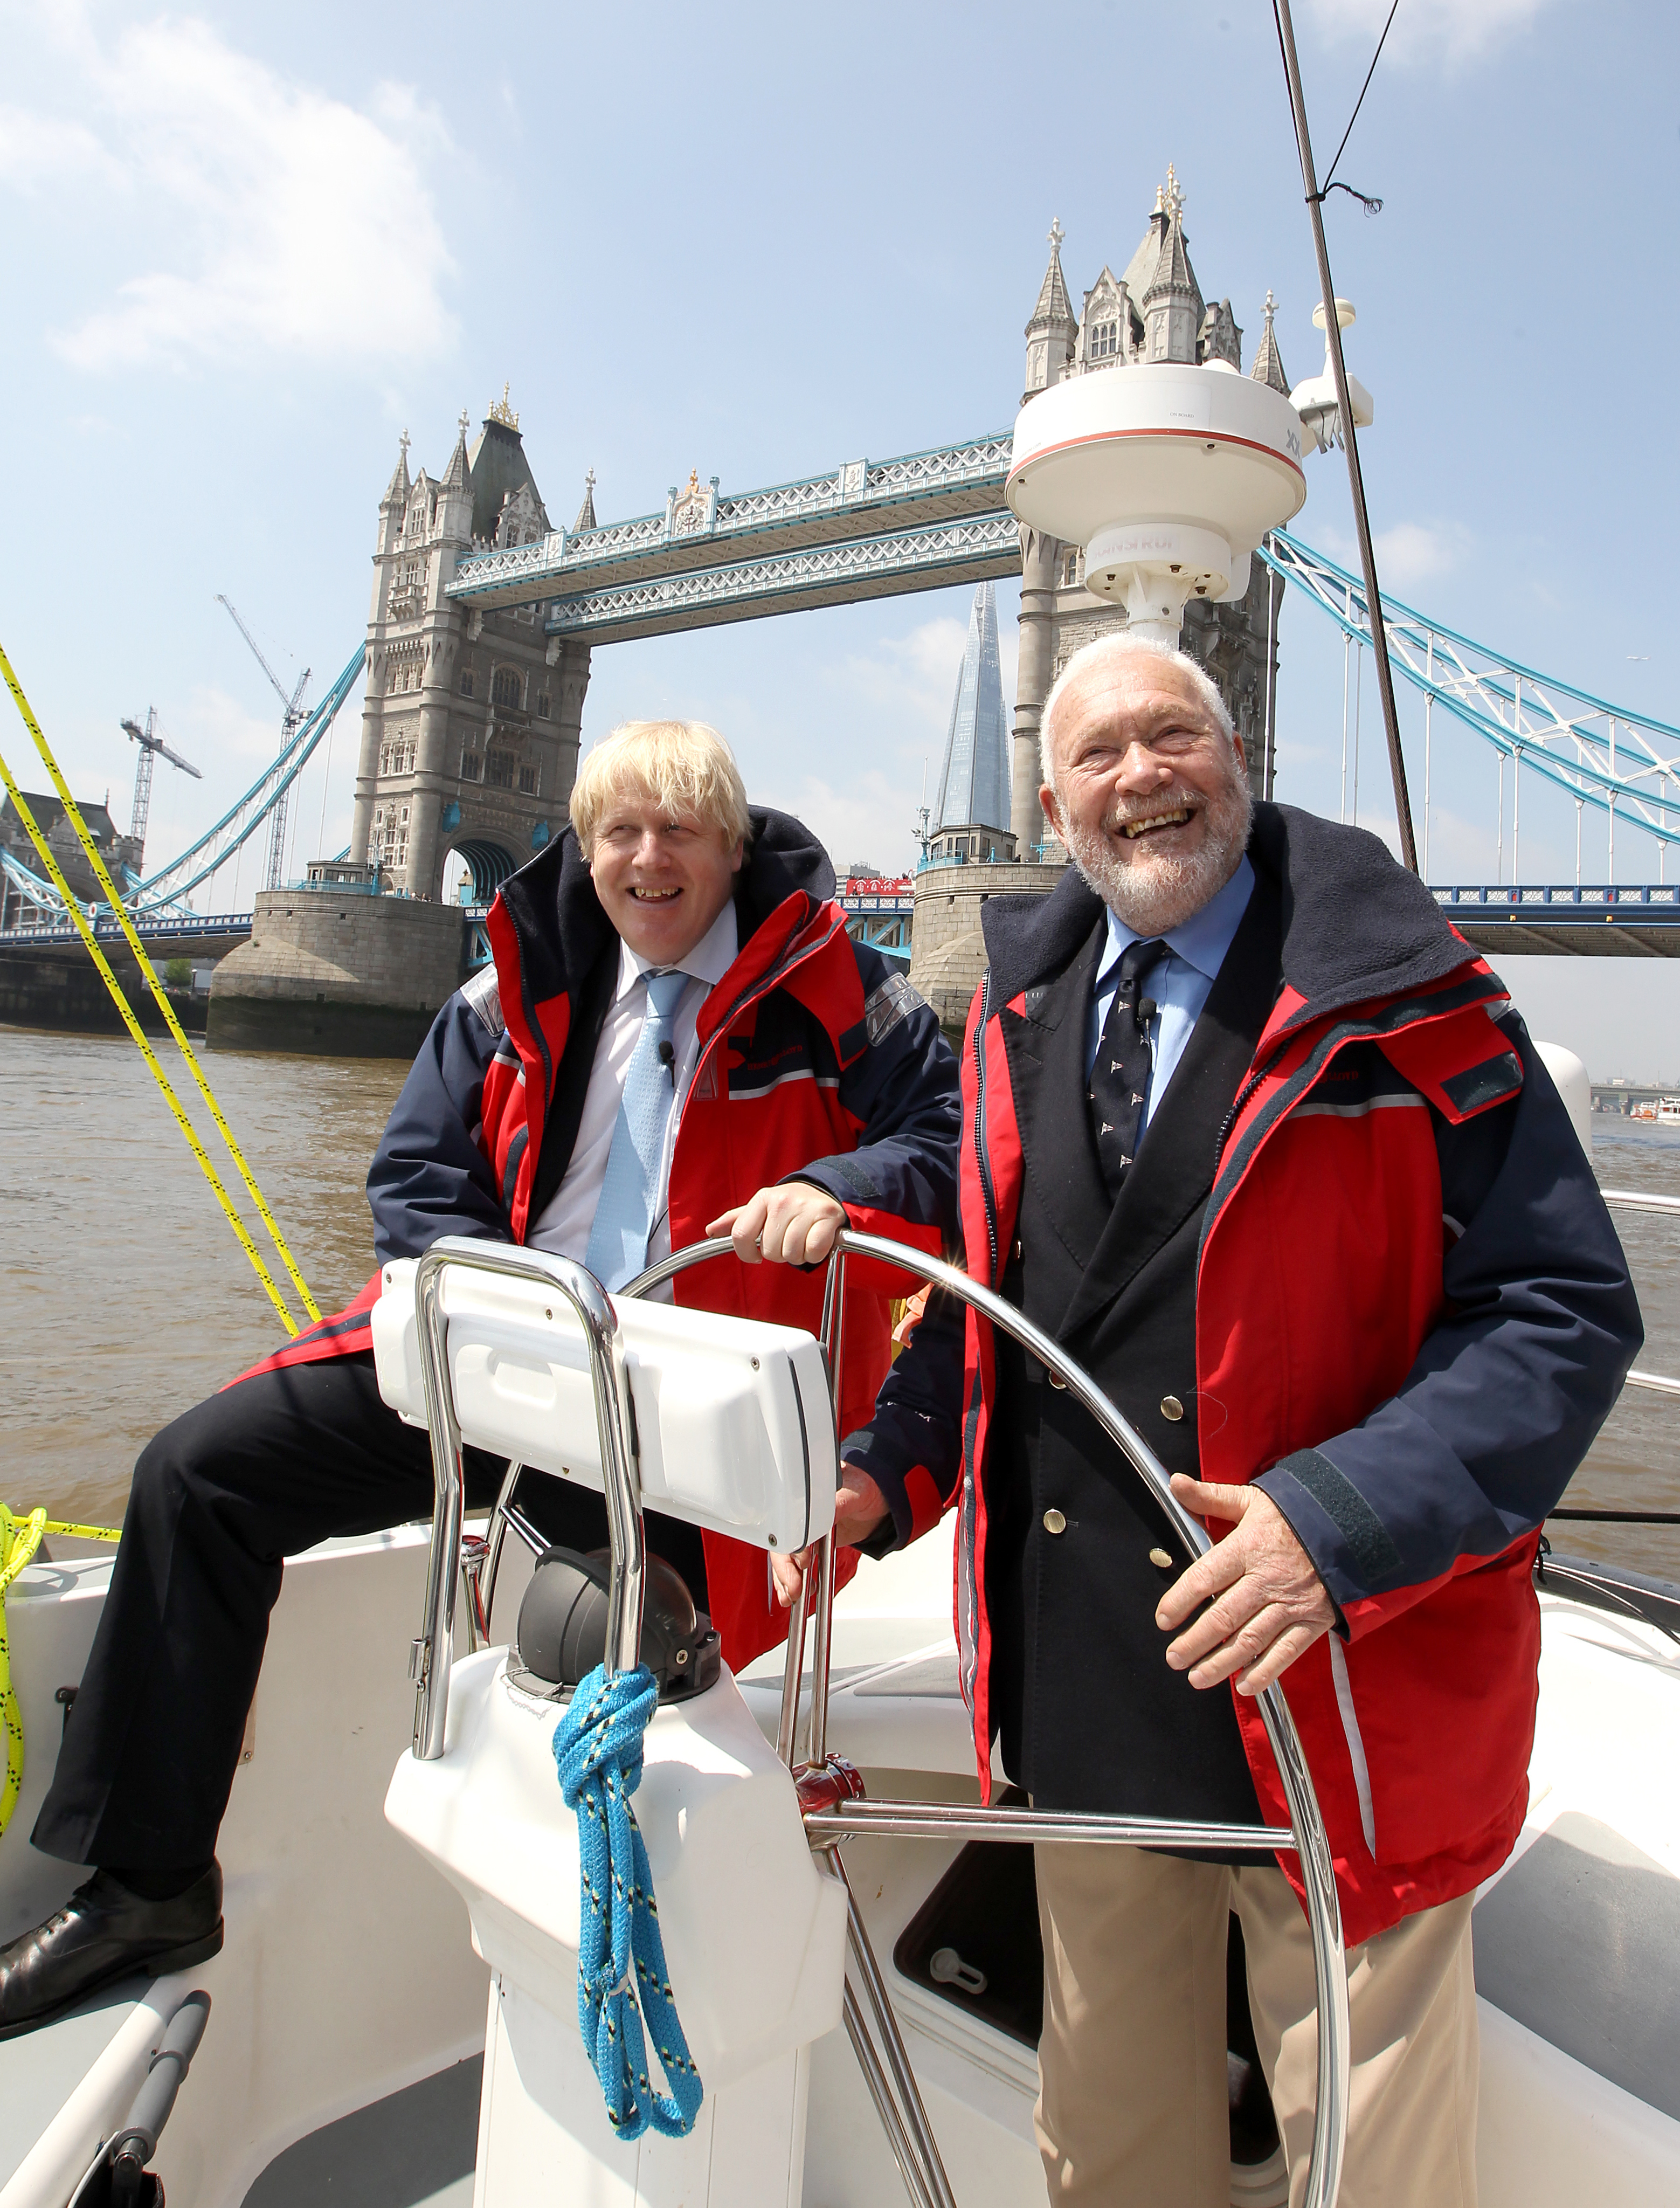 London Mayor Boris Johnson and Sir Robin Knox-Johnston at the announcement for London to host the start and Finish of the 2013-14 edition of the Clipper Round the World Yacht Race, during a photo call in London.